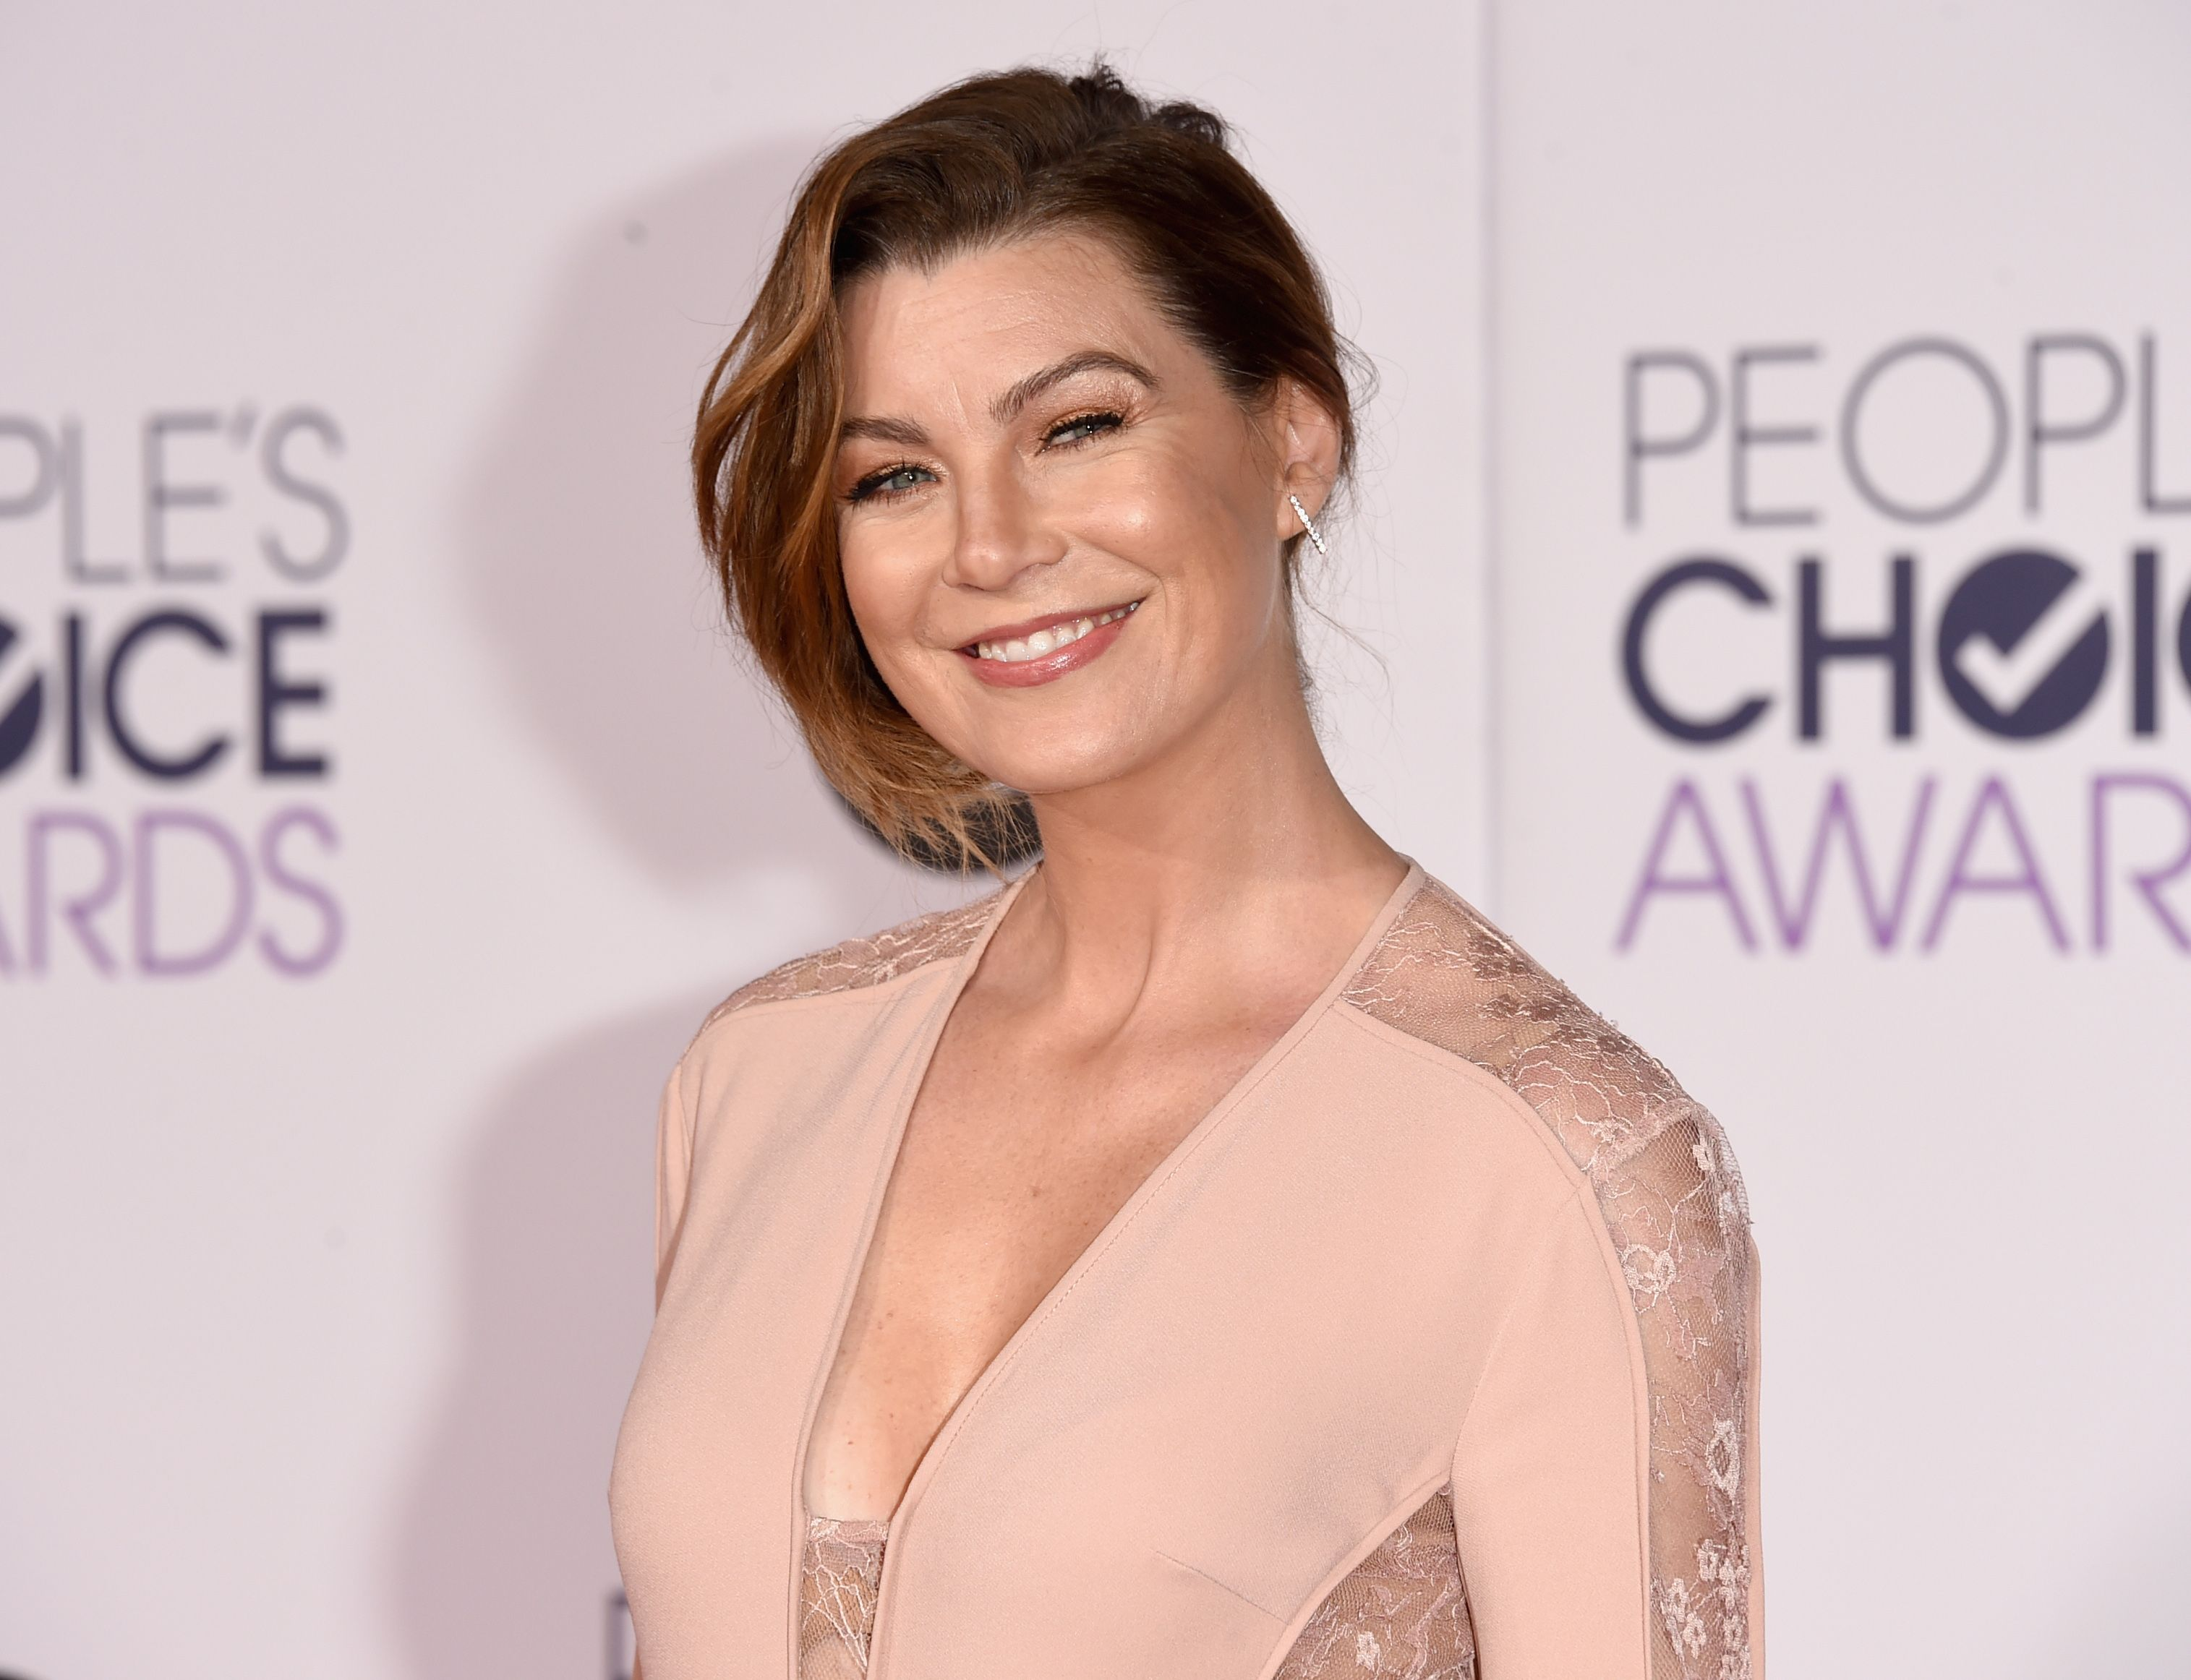 Ellen Pompeo at The 41st Annual People's Choice Awards at Nokia Theatre LA Live on January 7, 2015, in Los Angeles, California | Photo: Jason Merritt/Getty Images